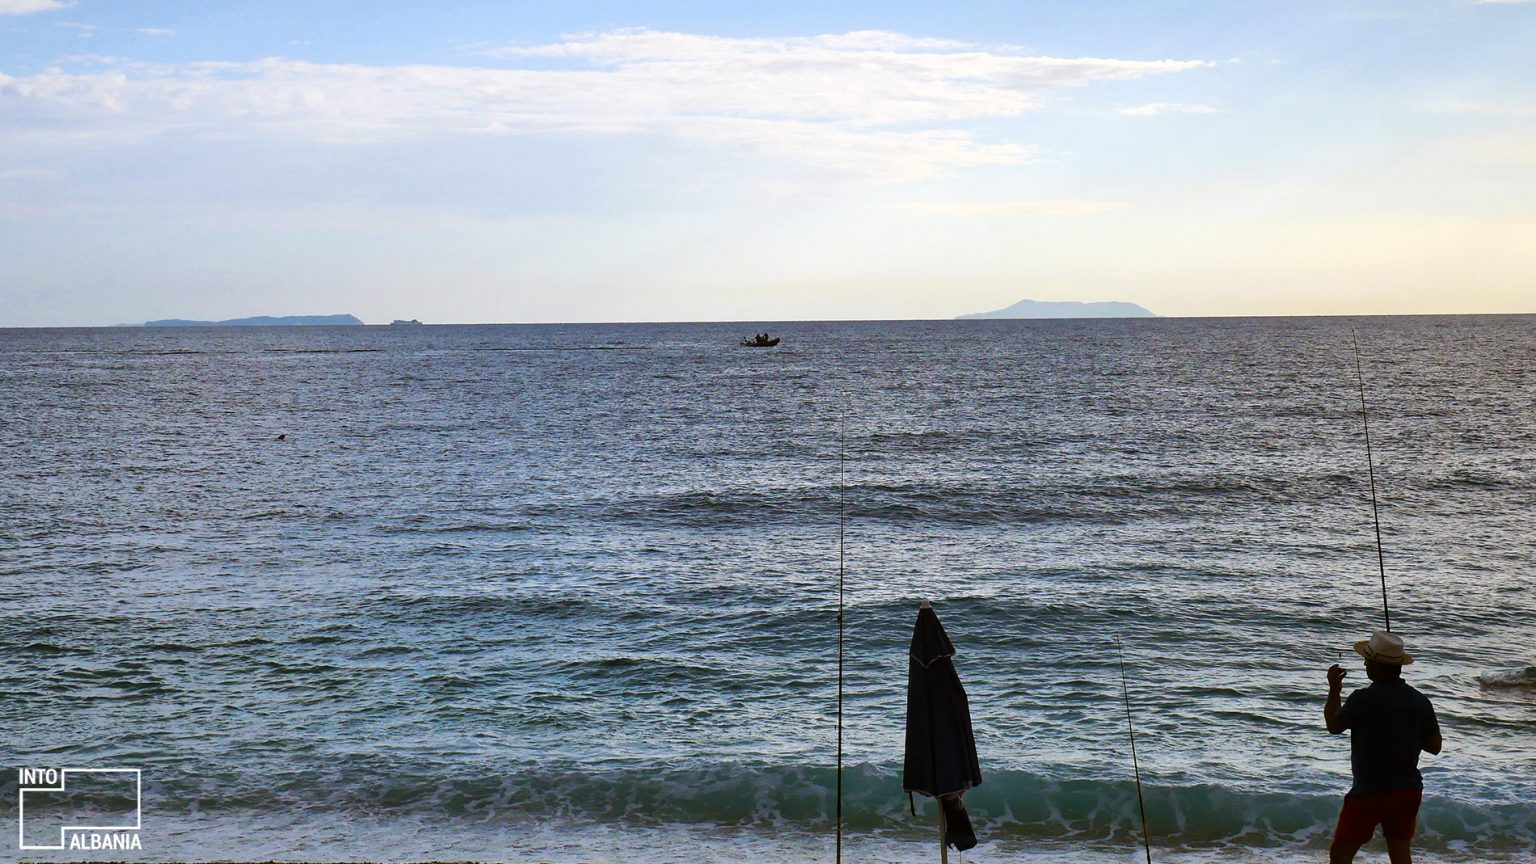 Fisherman in Livadh, photo by IntoAlbania